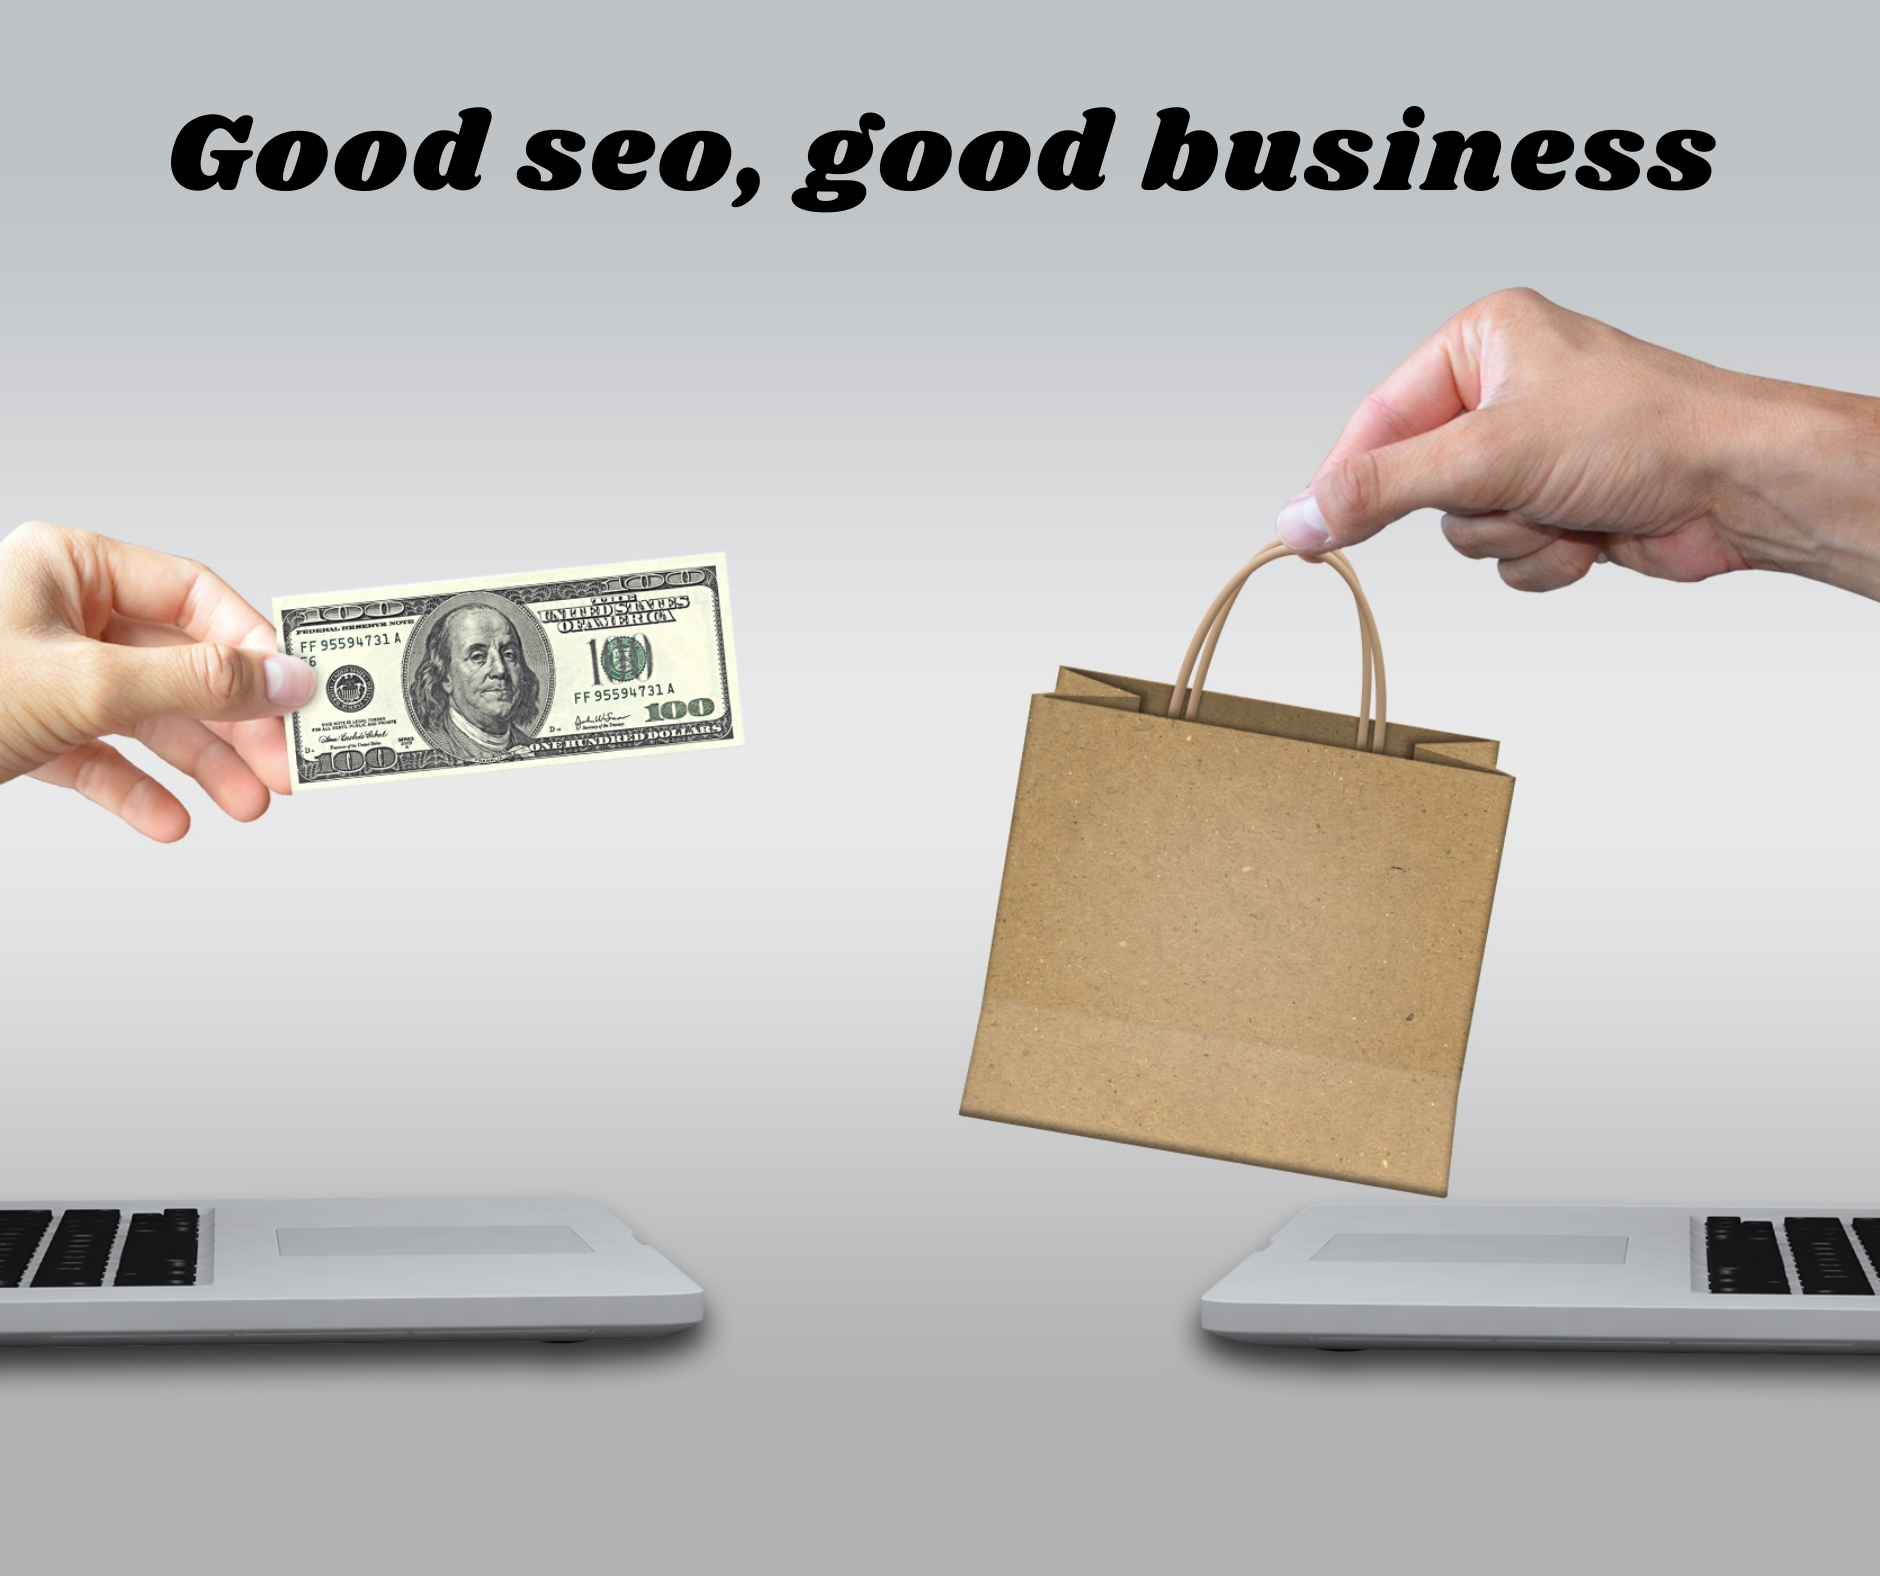 I offer keyword analysis and an original seo article of 1500-2000 words